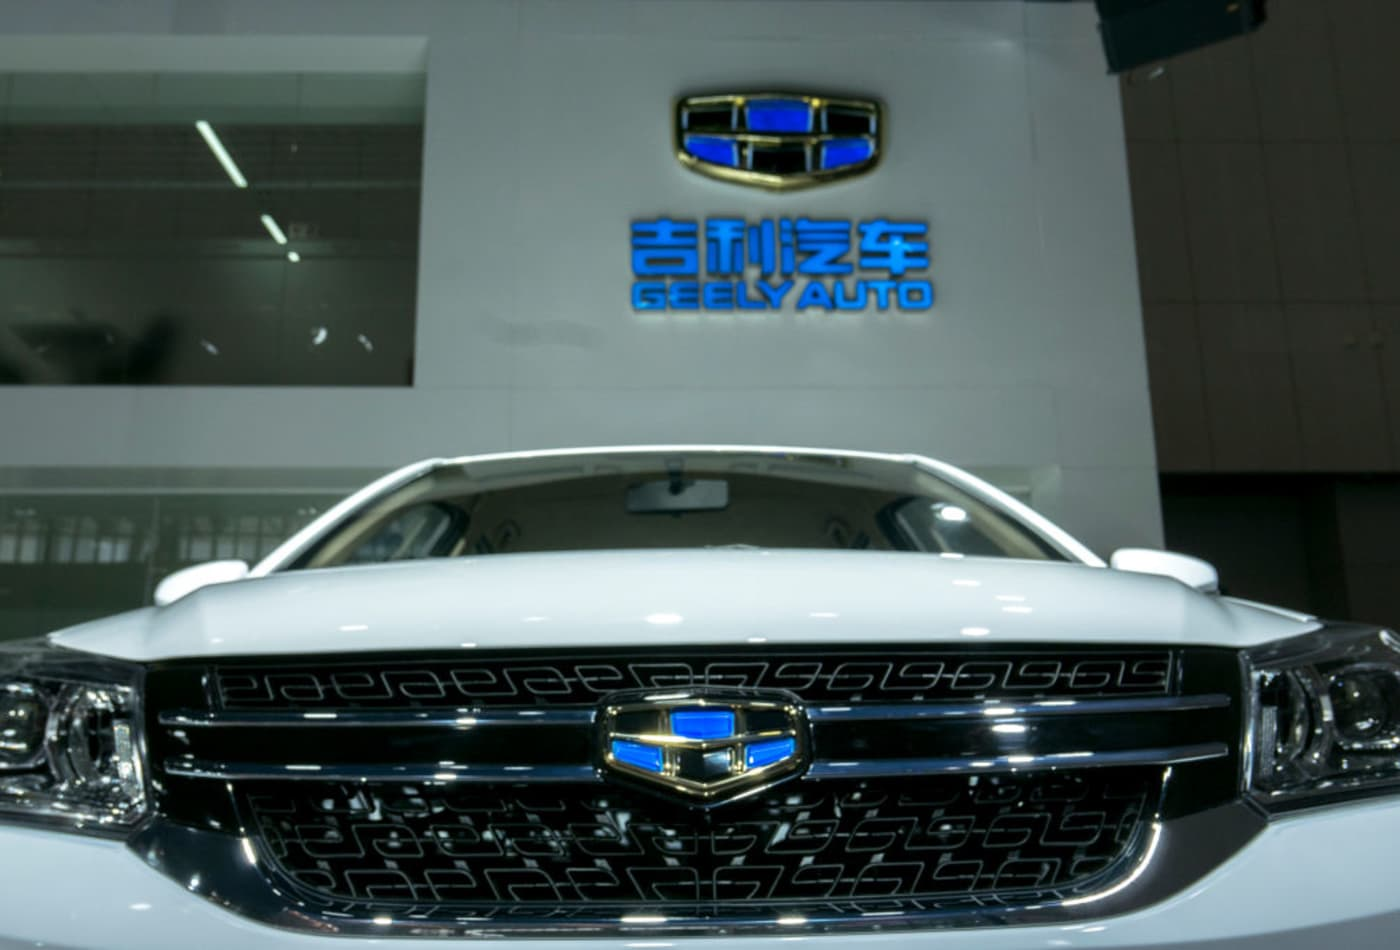 Tencent teams up with Chinese automaker Geely on driverless and smart car tech